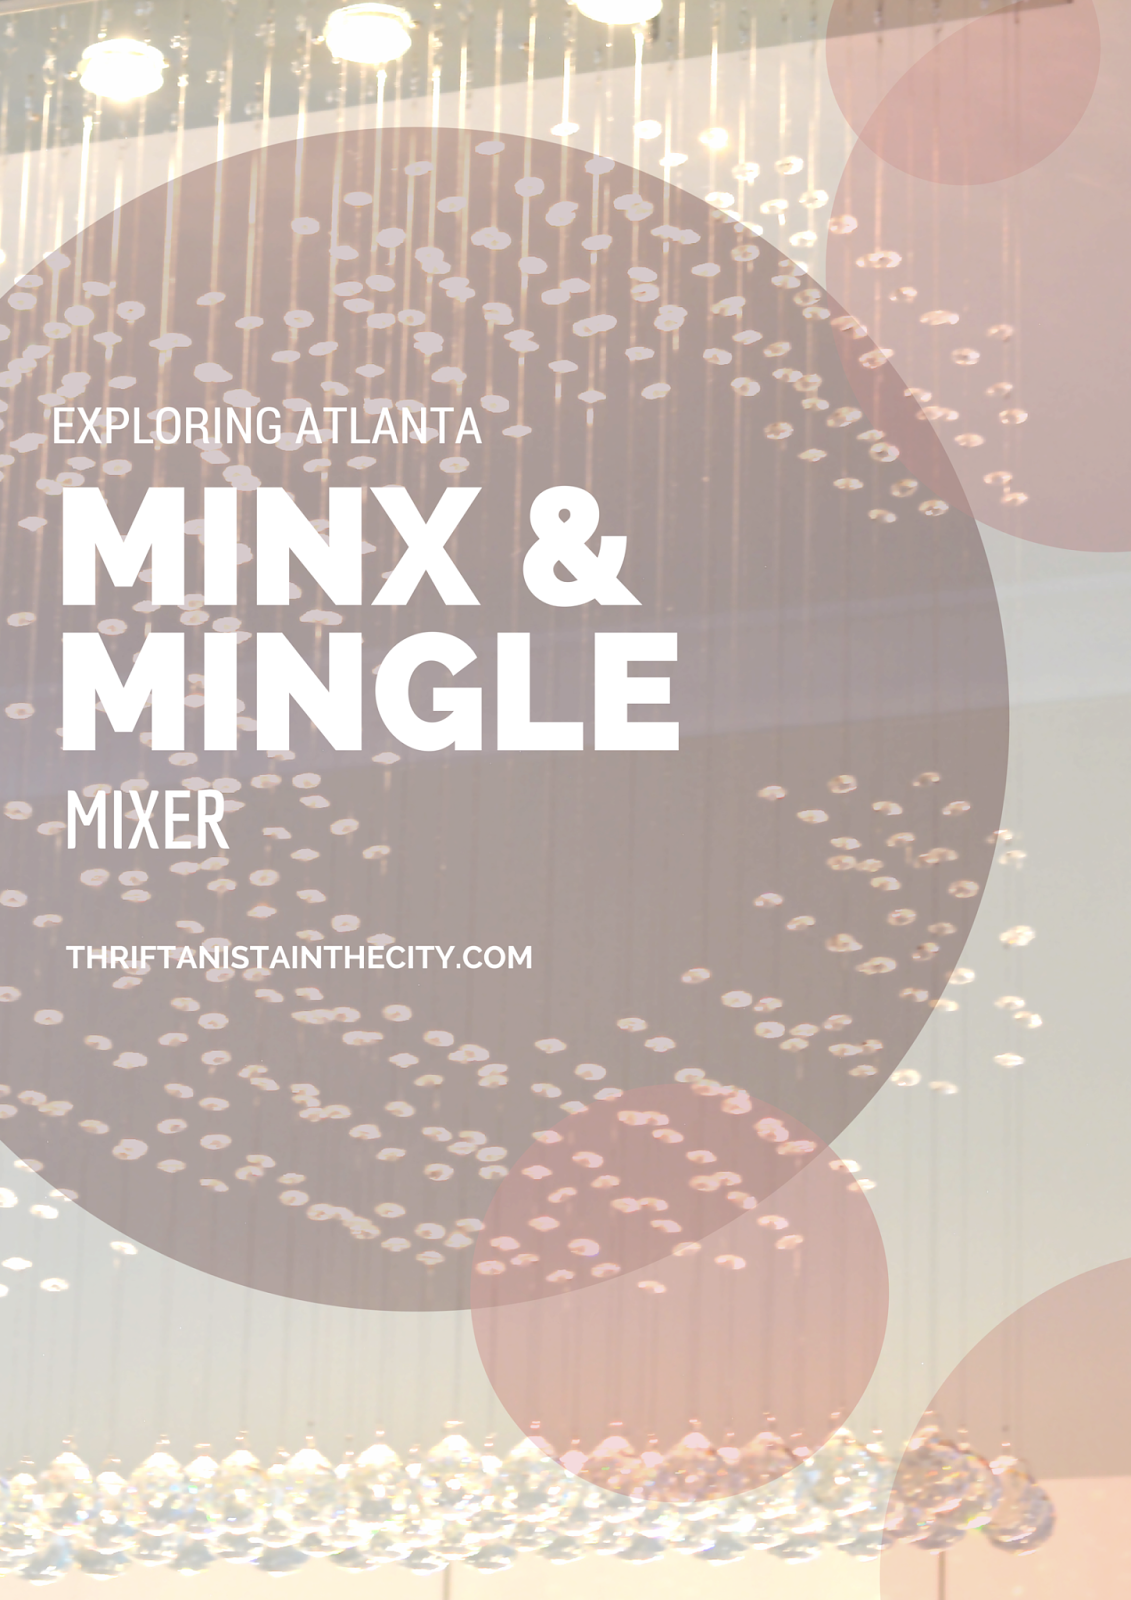 minx & mingle mixer atlanta